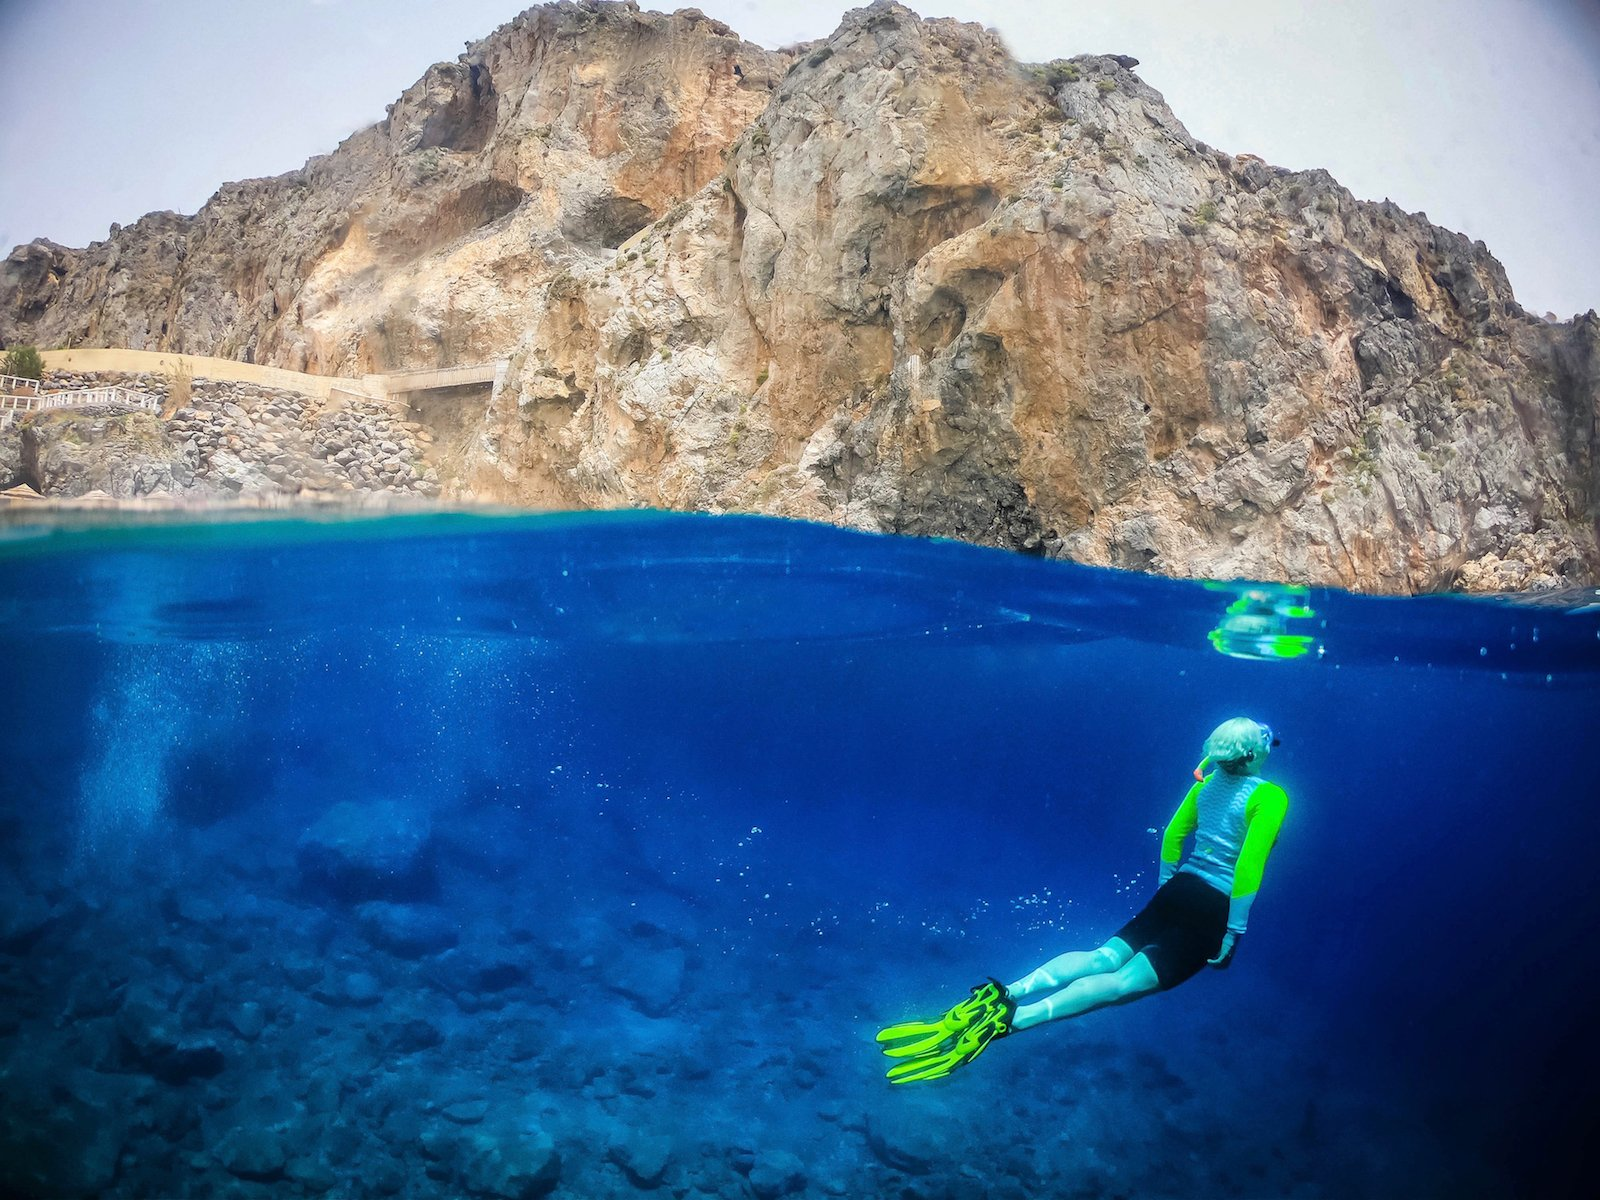 Gopro-Diving-greece-Fiona-madden Photography Professional